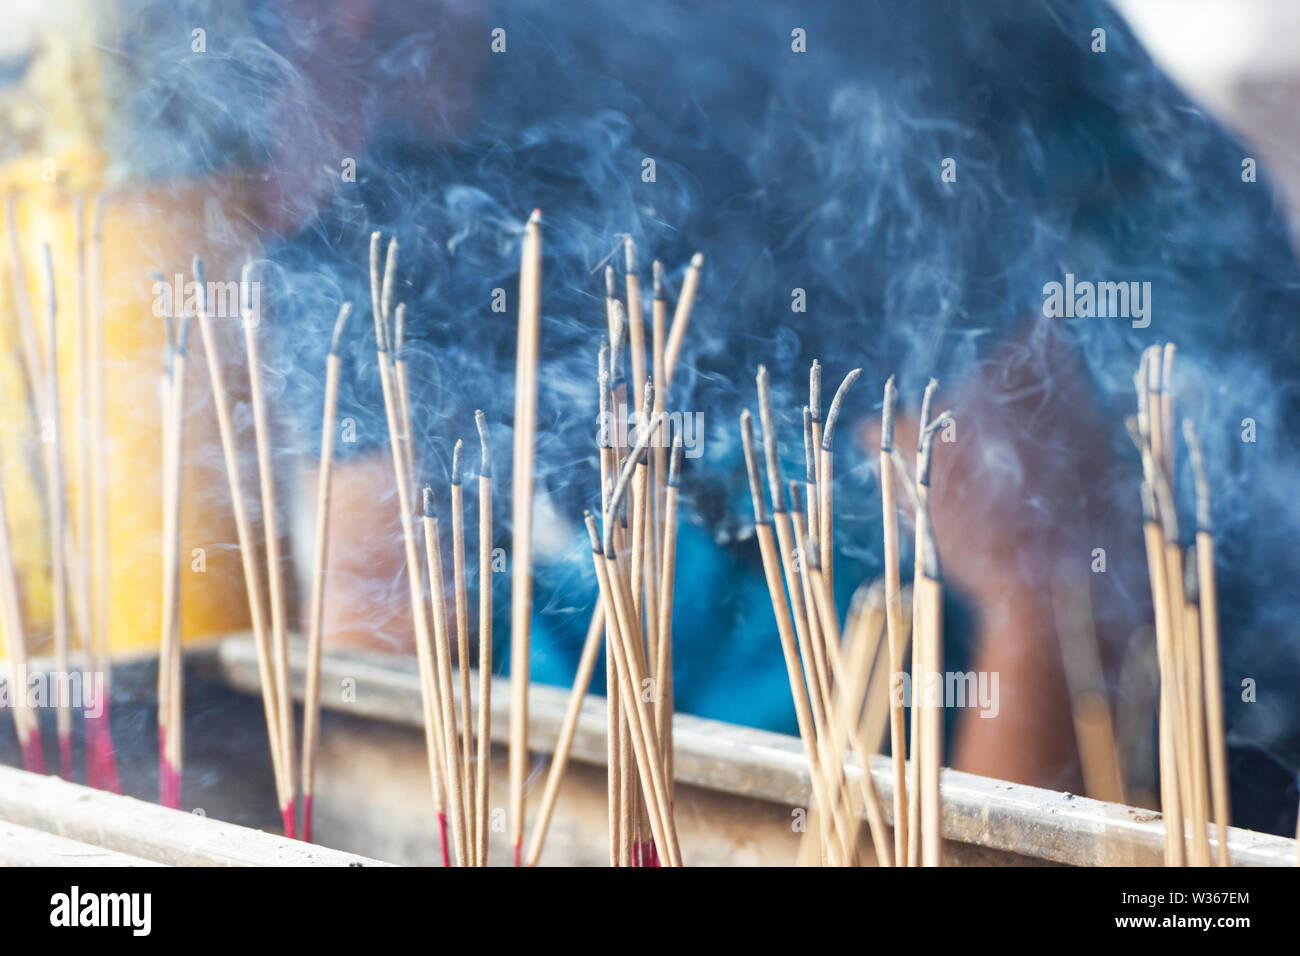 incense use for Worship And sacred things, According to ancient beliefs - Stock Image